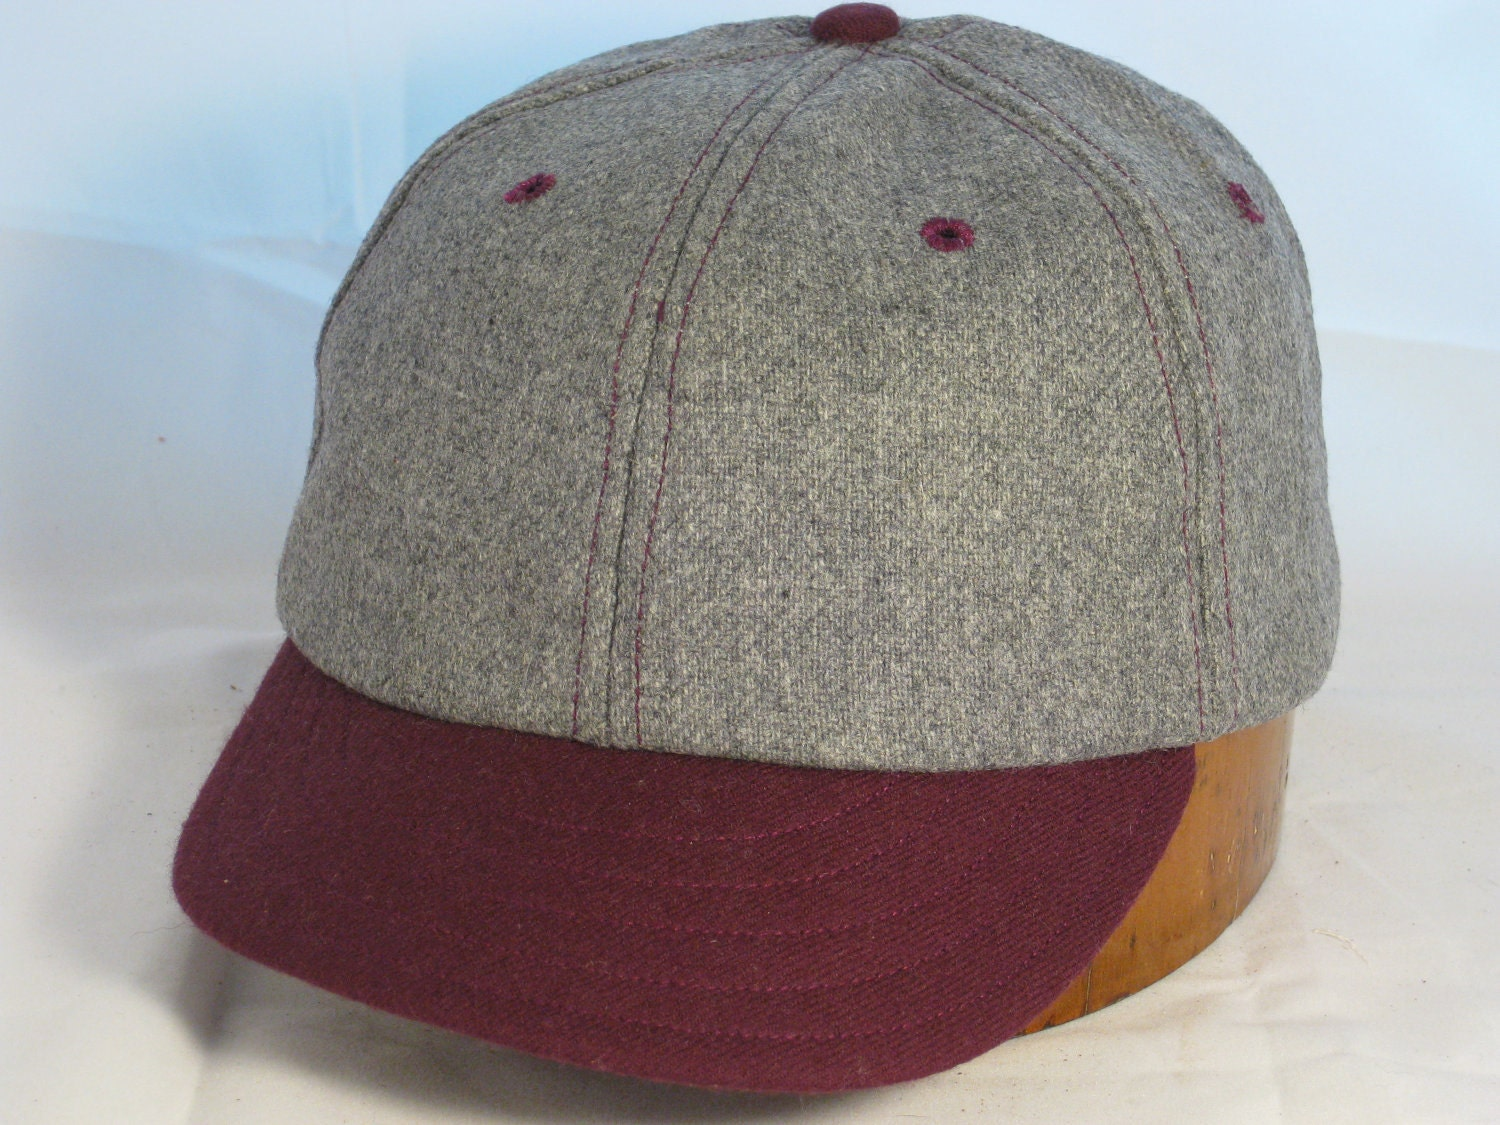 baseball cap 6 panel soft wool flannel with supple leather